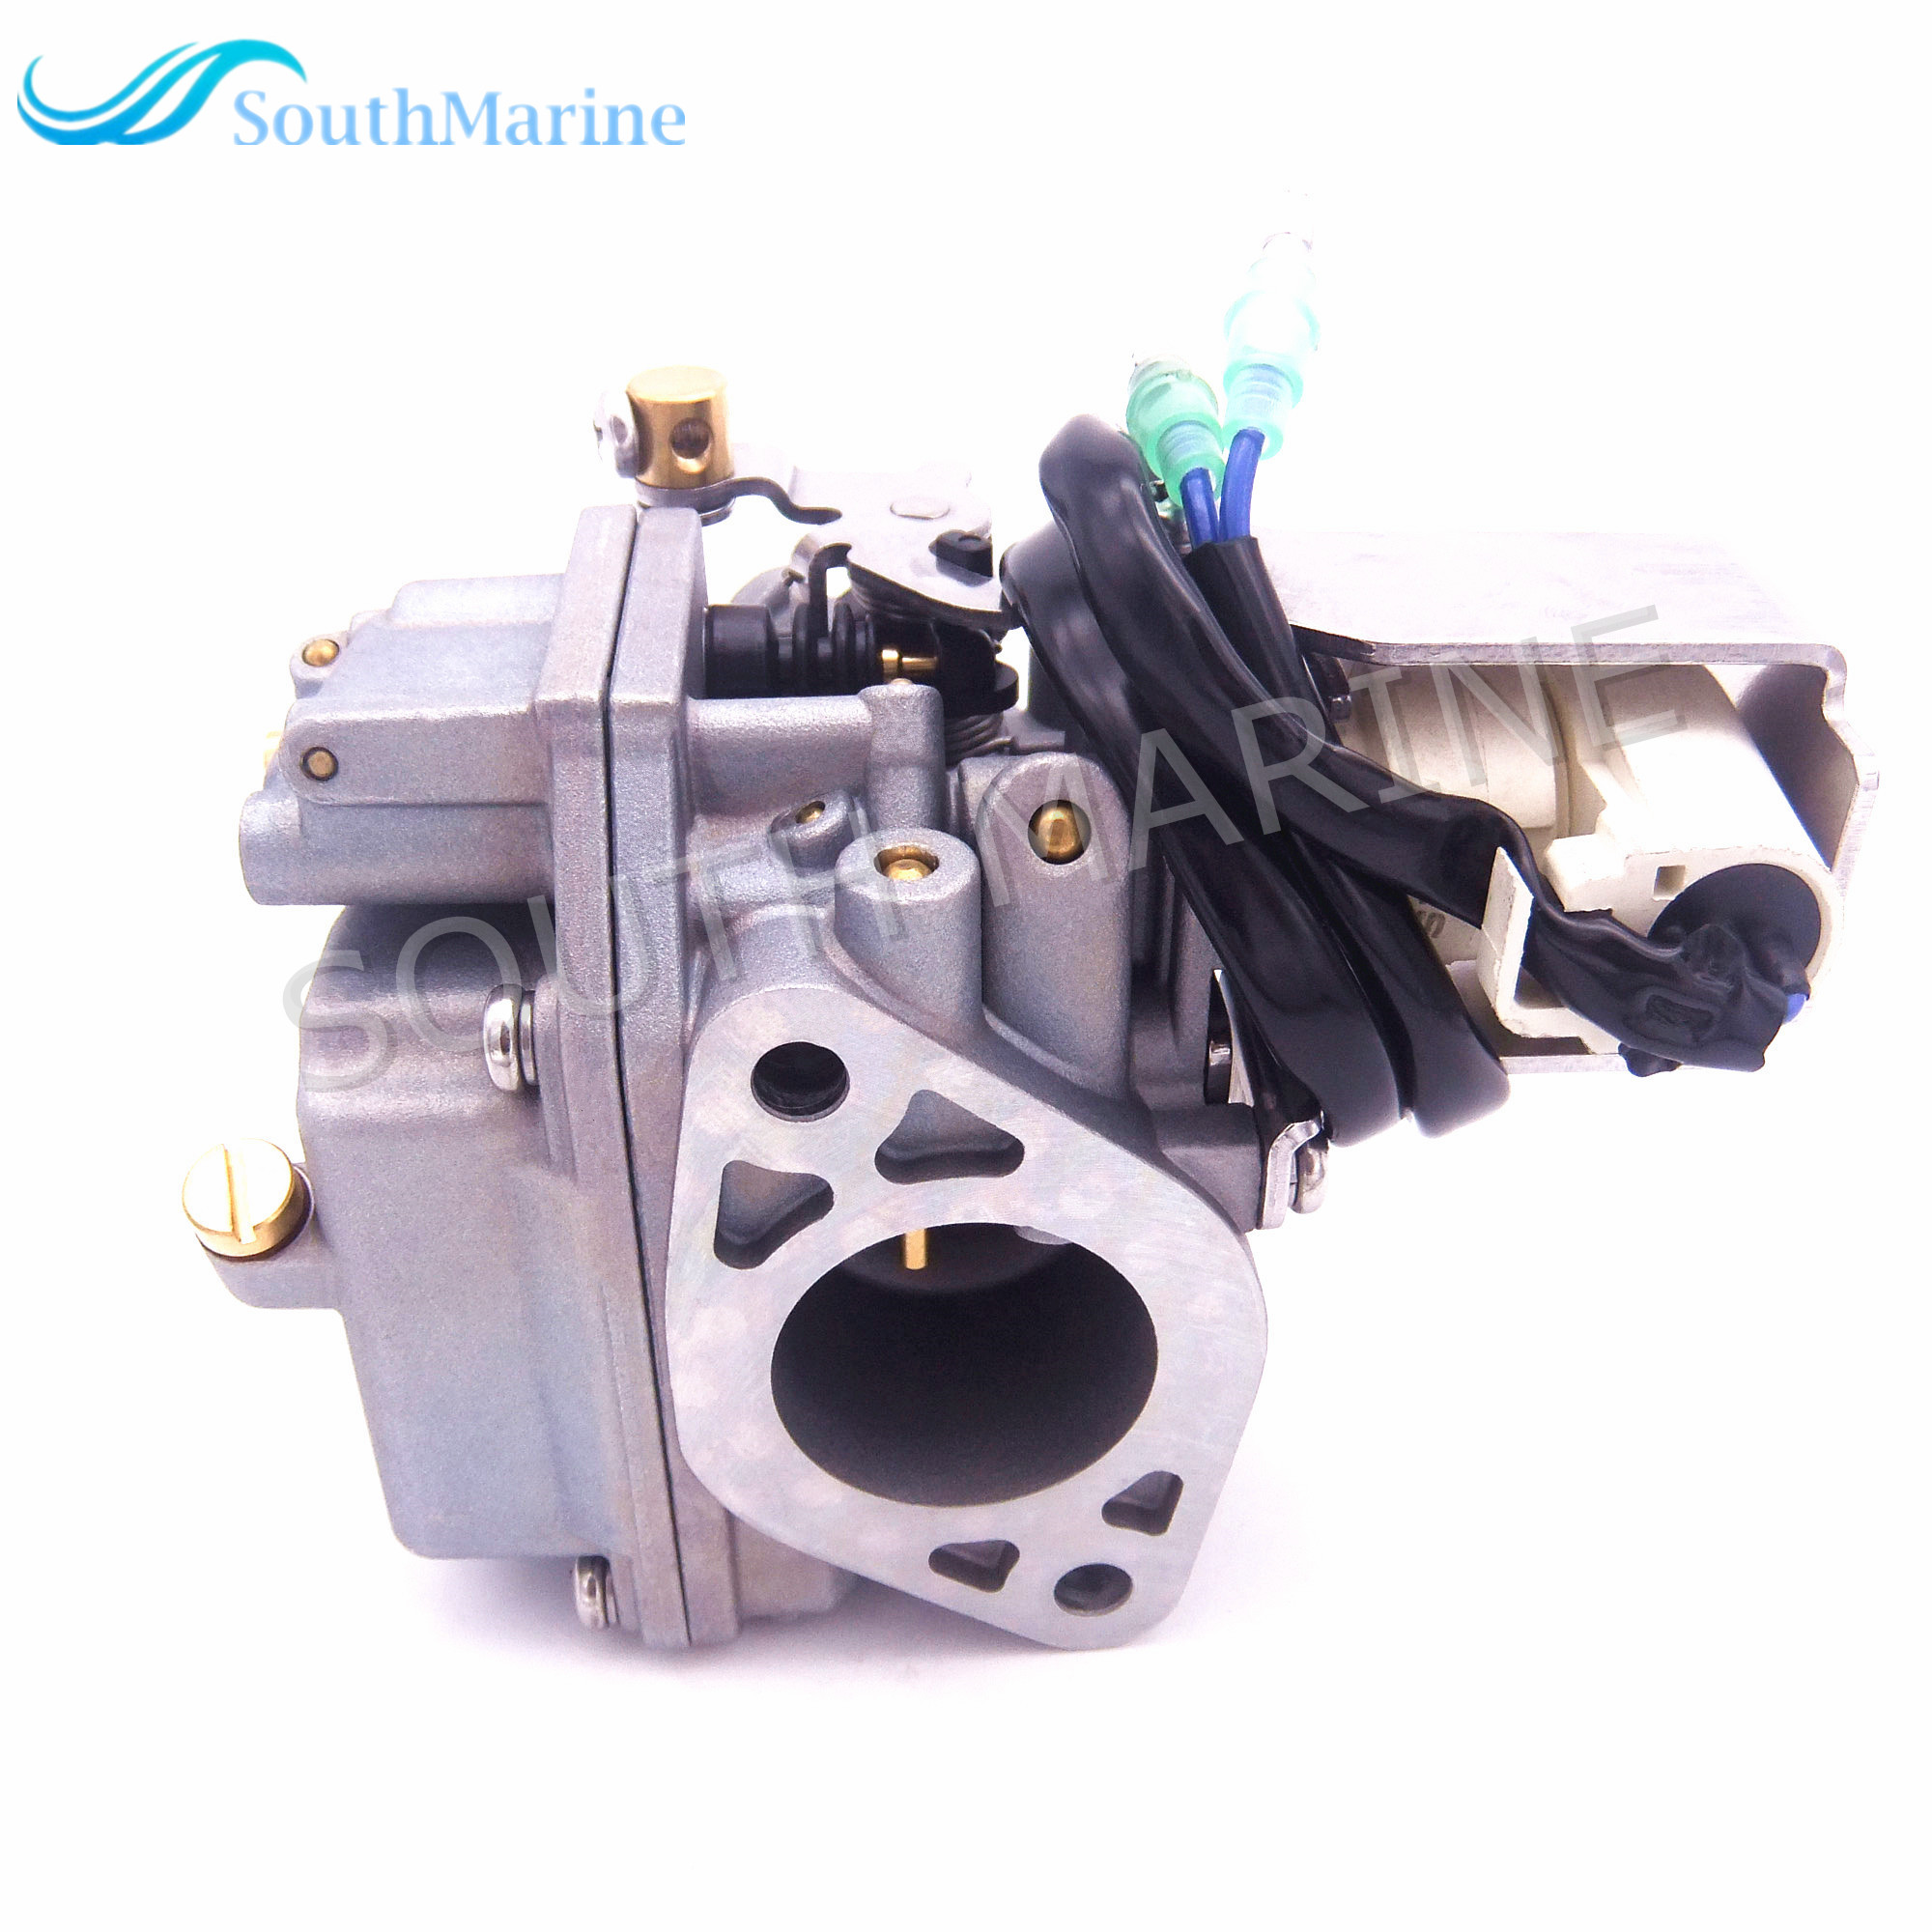 Outboard Engine Carburetor Assy 6AH-14301-00 6AH-14301-01 for Yamaha 4-stroke F20 Boat Motor Free Shipping 6b4 45501 10 driver shaft long for yamaha 9 9hp 15hp 2 stroke 15d outboard engine boat motor aftermarket parts 6b4 45501